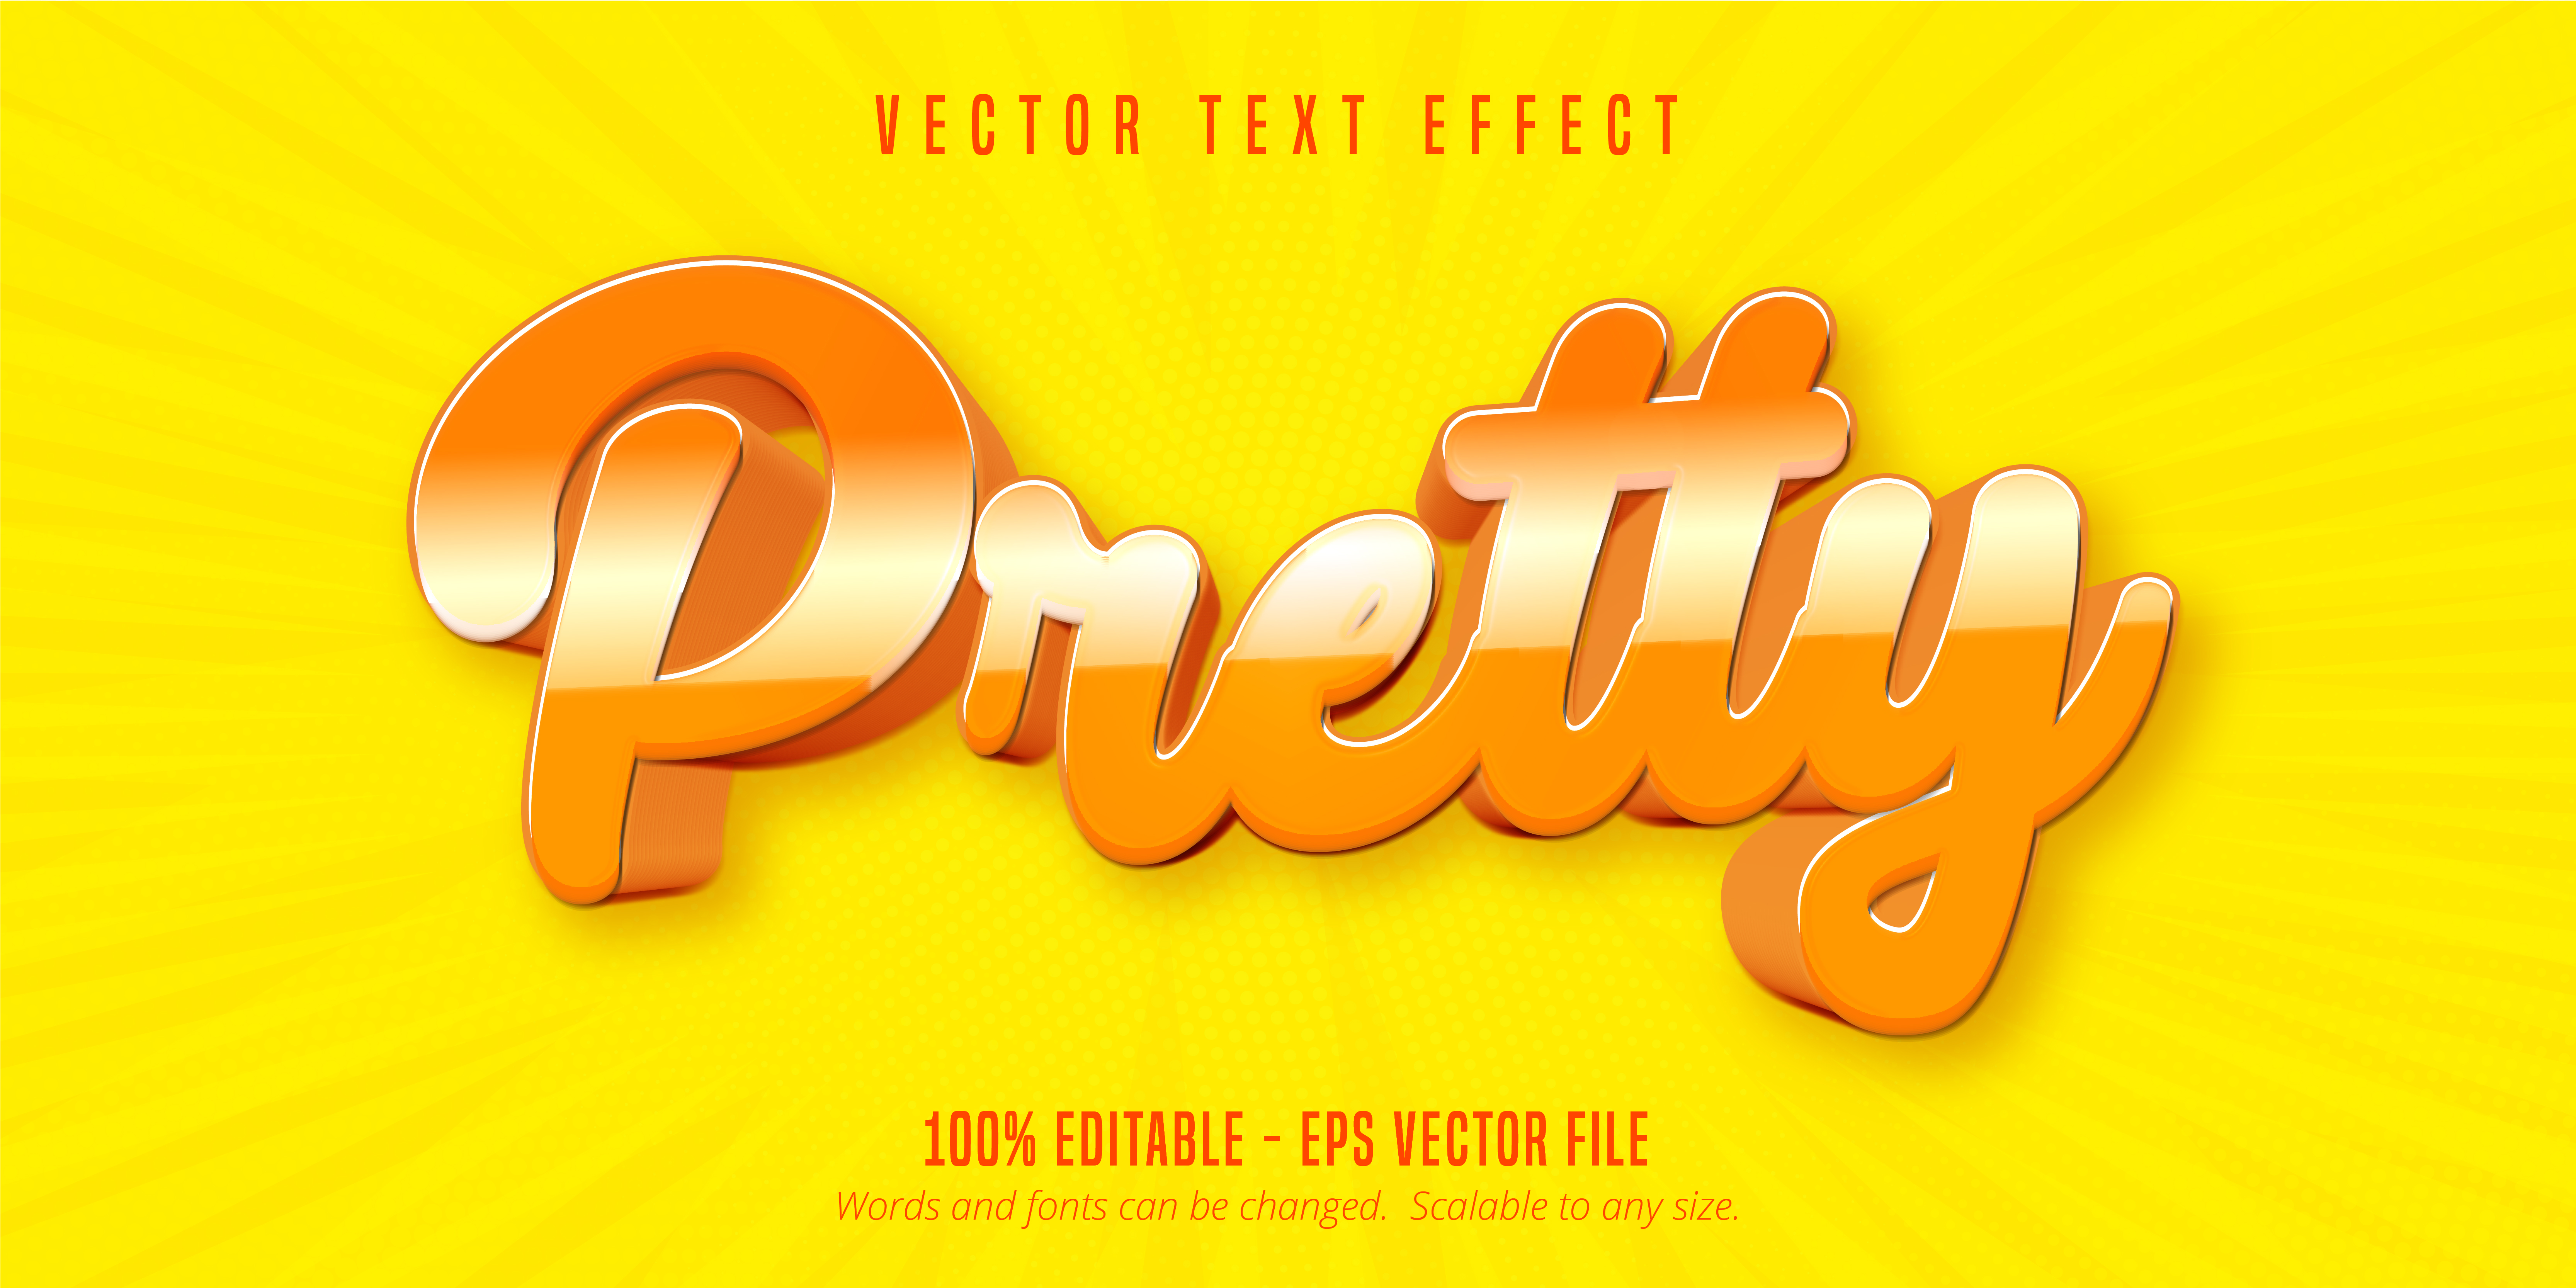 Pretty Text, Cartoon Style Text Effect